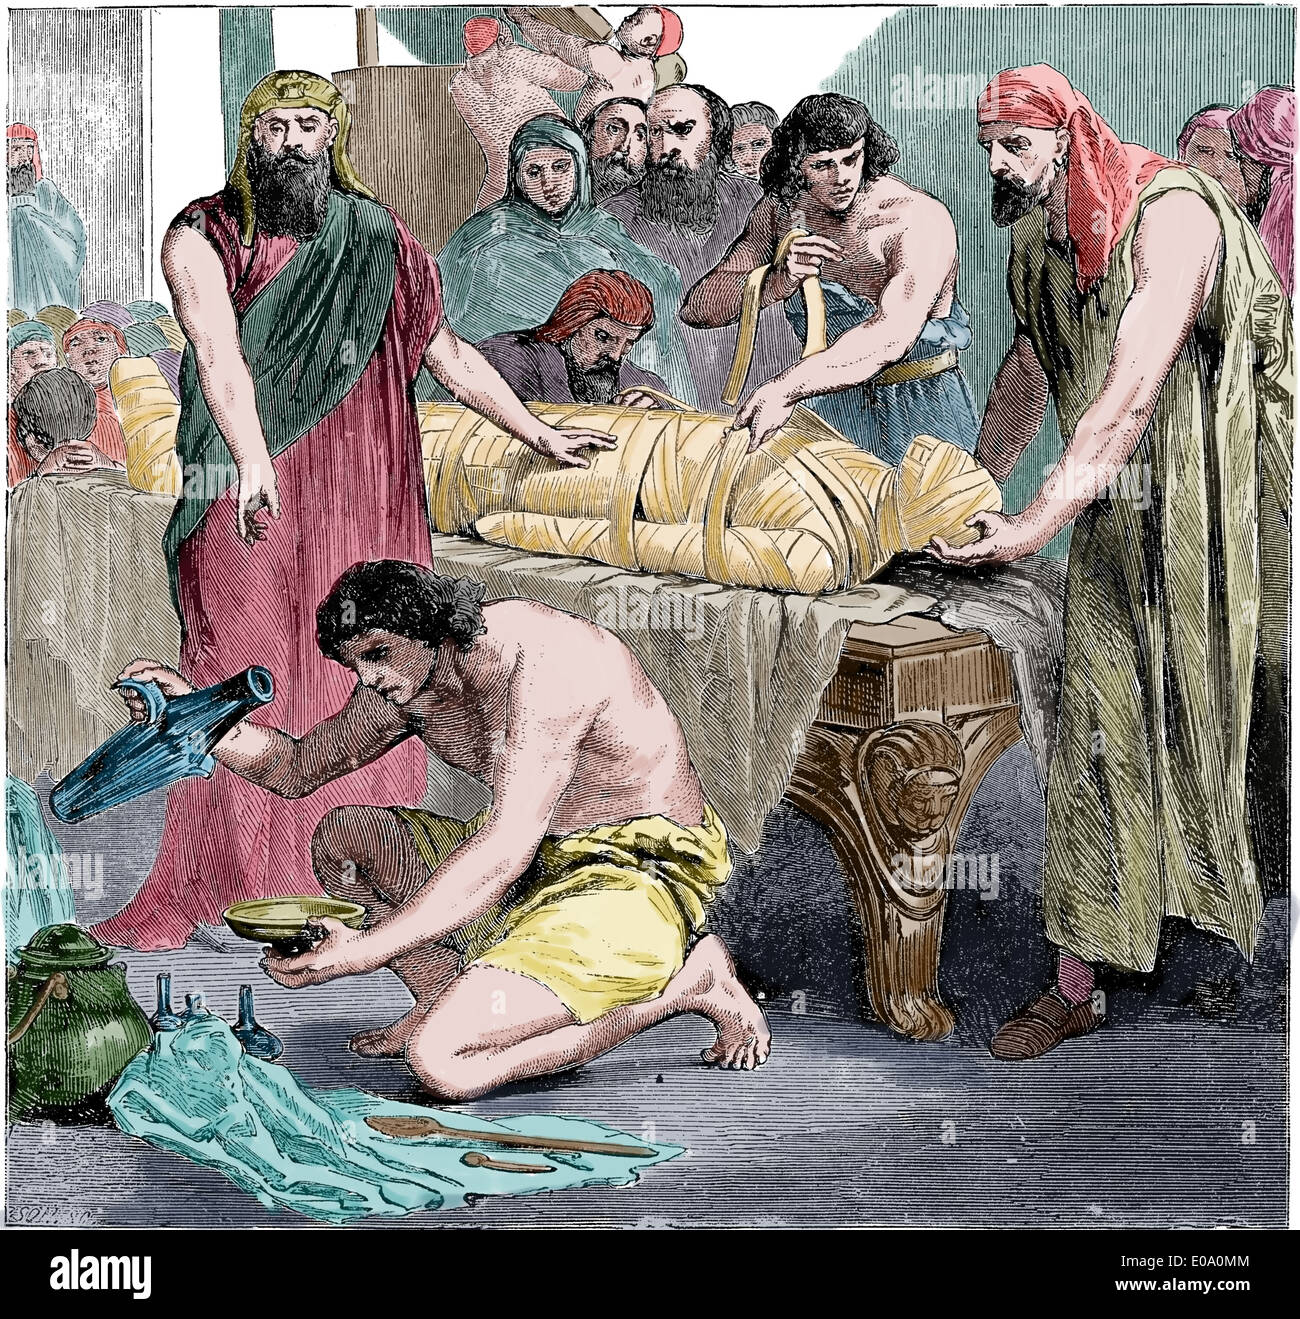 Ancient Egypt. Embalsaming. Cyclopedia of Universal History, 1885. Engraving. Later colouration. Ritual. - Stock Image